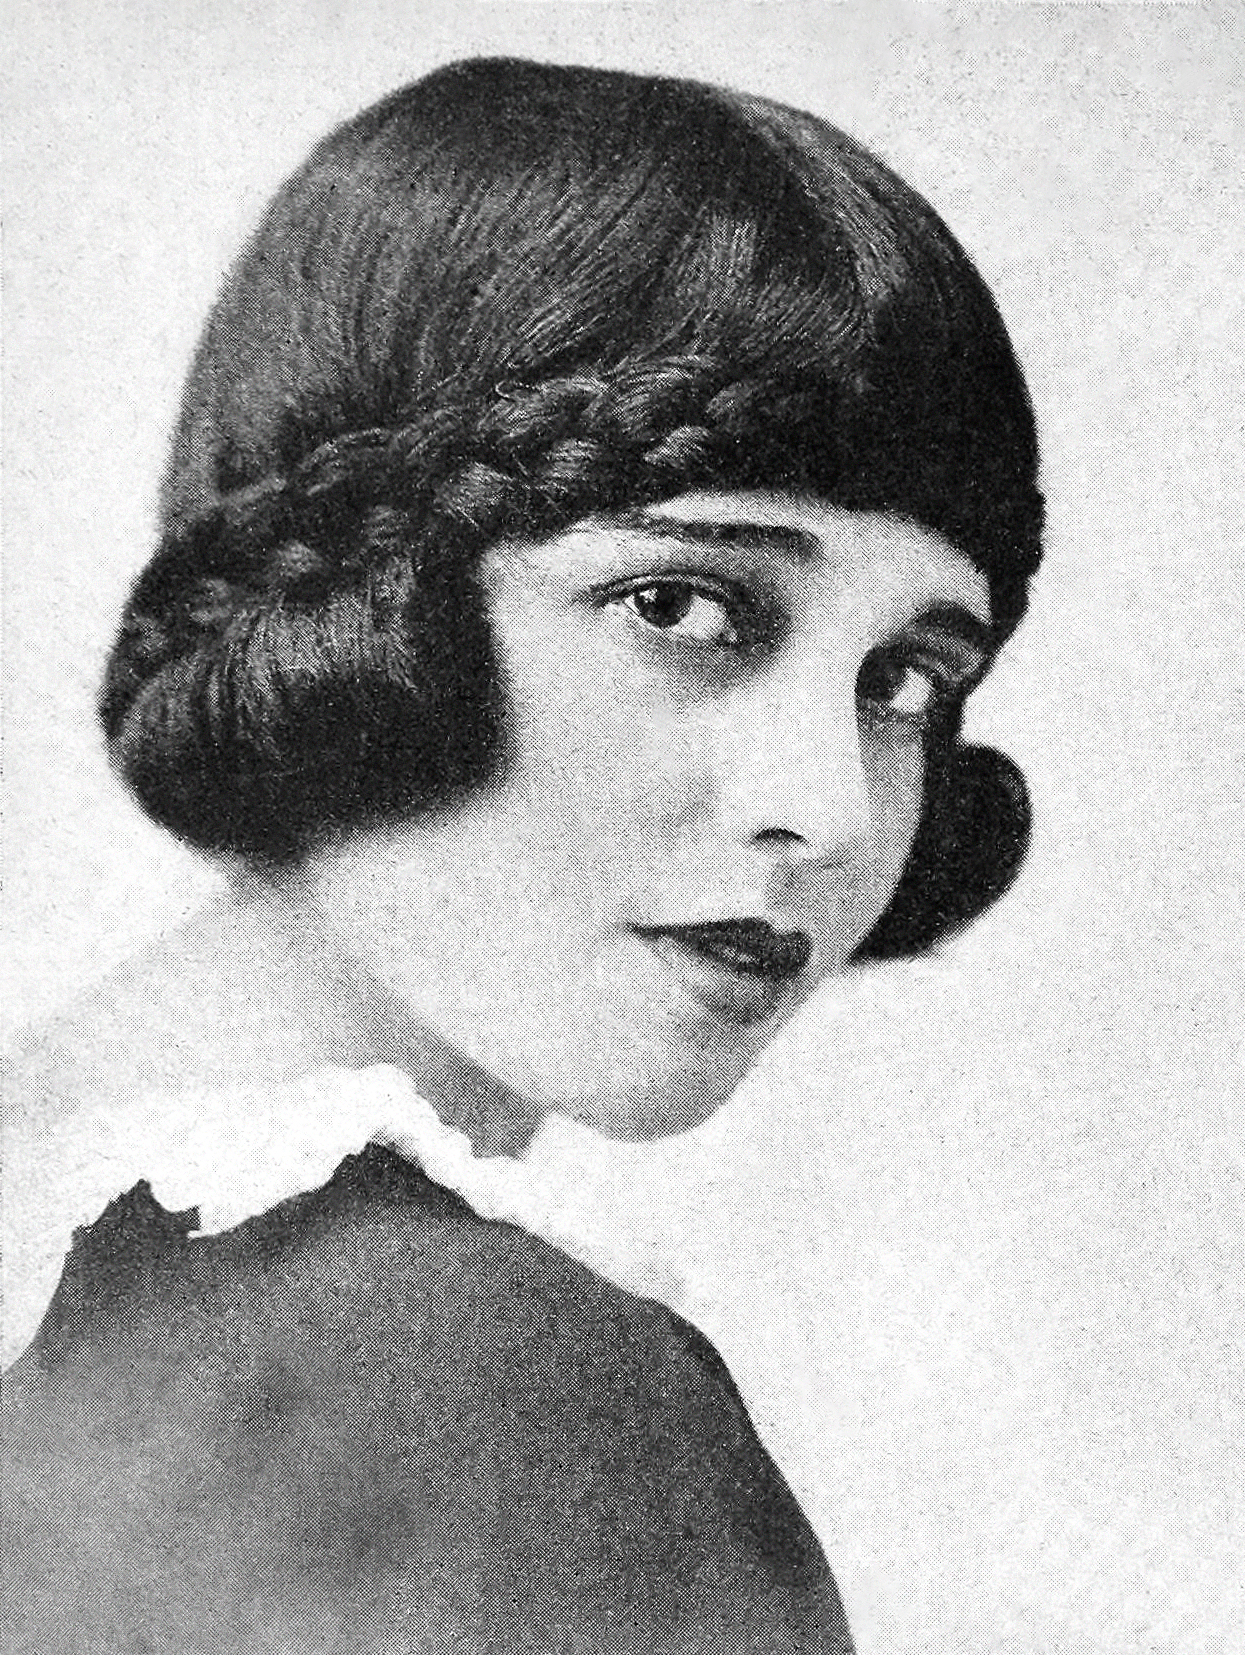 File:Anita Loos - Apr May 1920 MP.jpg